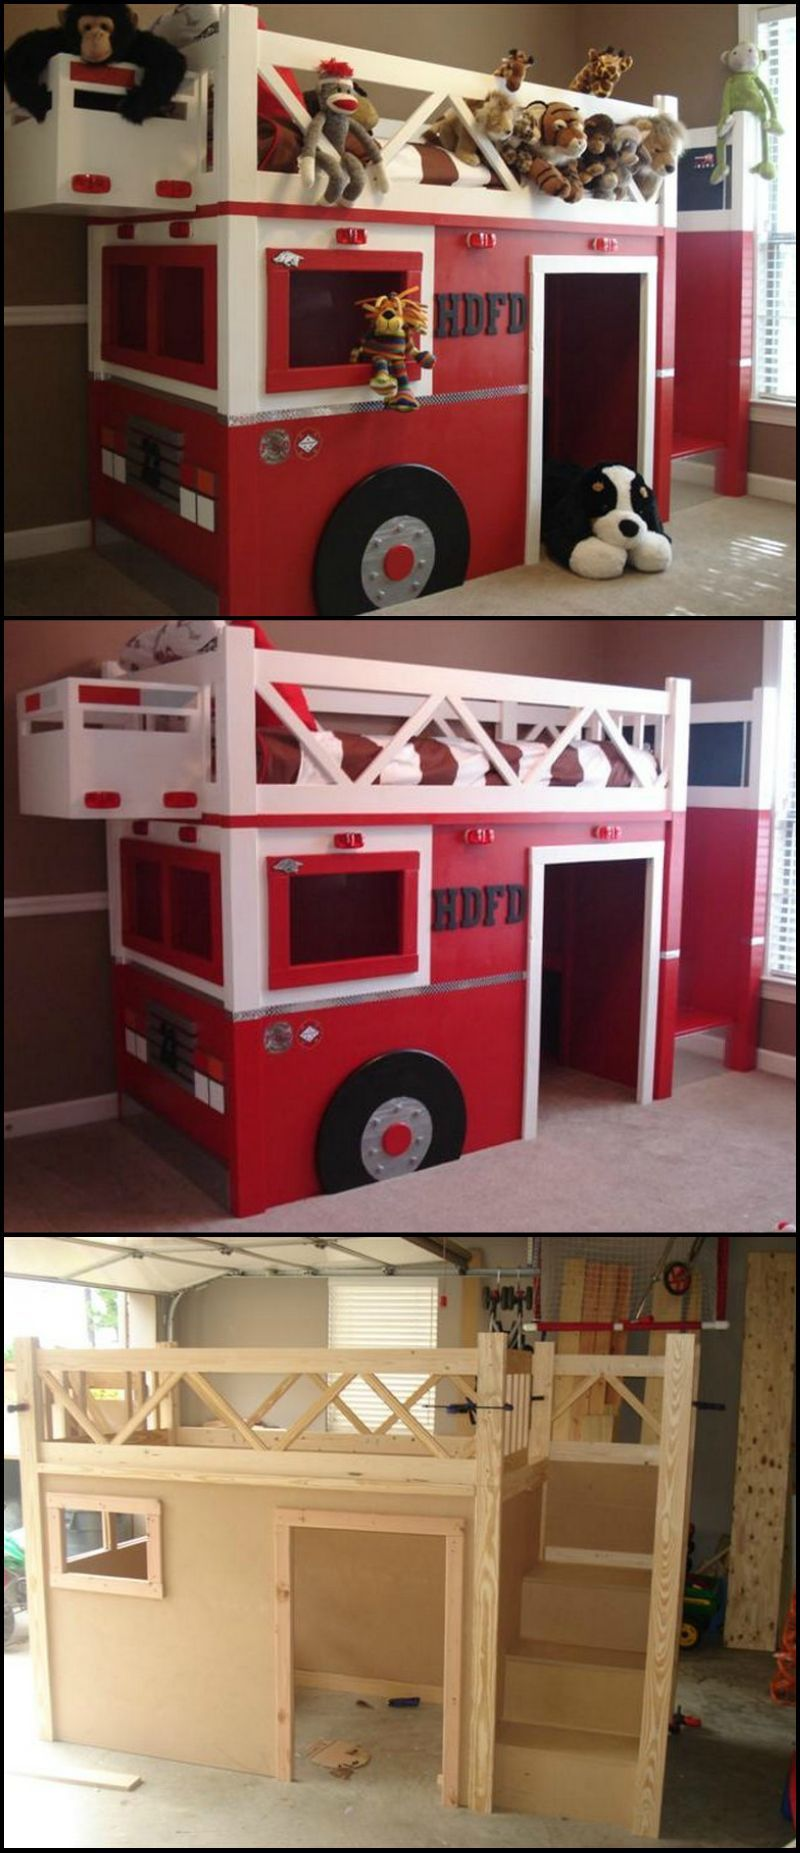 How To Build A Fire Truck Bunk Bed Http Theownerbuildernetwork Co L4h3 Kids Love Bunk Beds But You Don T Kinder Zimmer Betten Für Kinder Bett Selber Bauen